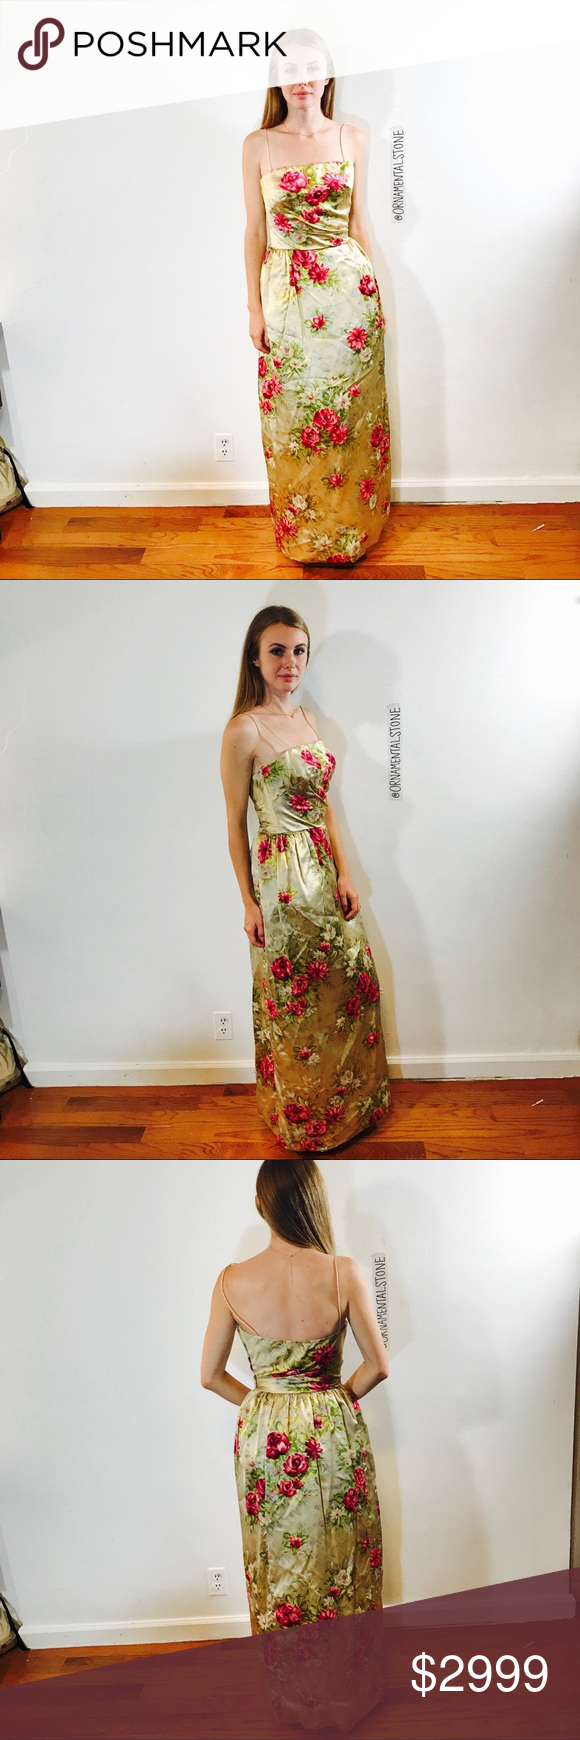 RIZIK BROS WASHINGTON DC VINTAGE COUTURE GOWN VELV Incredible couture gown, fit for a museum. Painted FLORAL VELVET, fitted. Model is size 2/4 for reference in fit. Minimal stretch Vintage Dresses